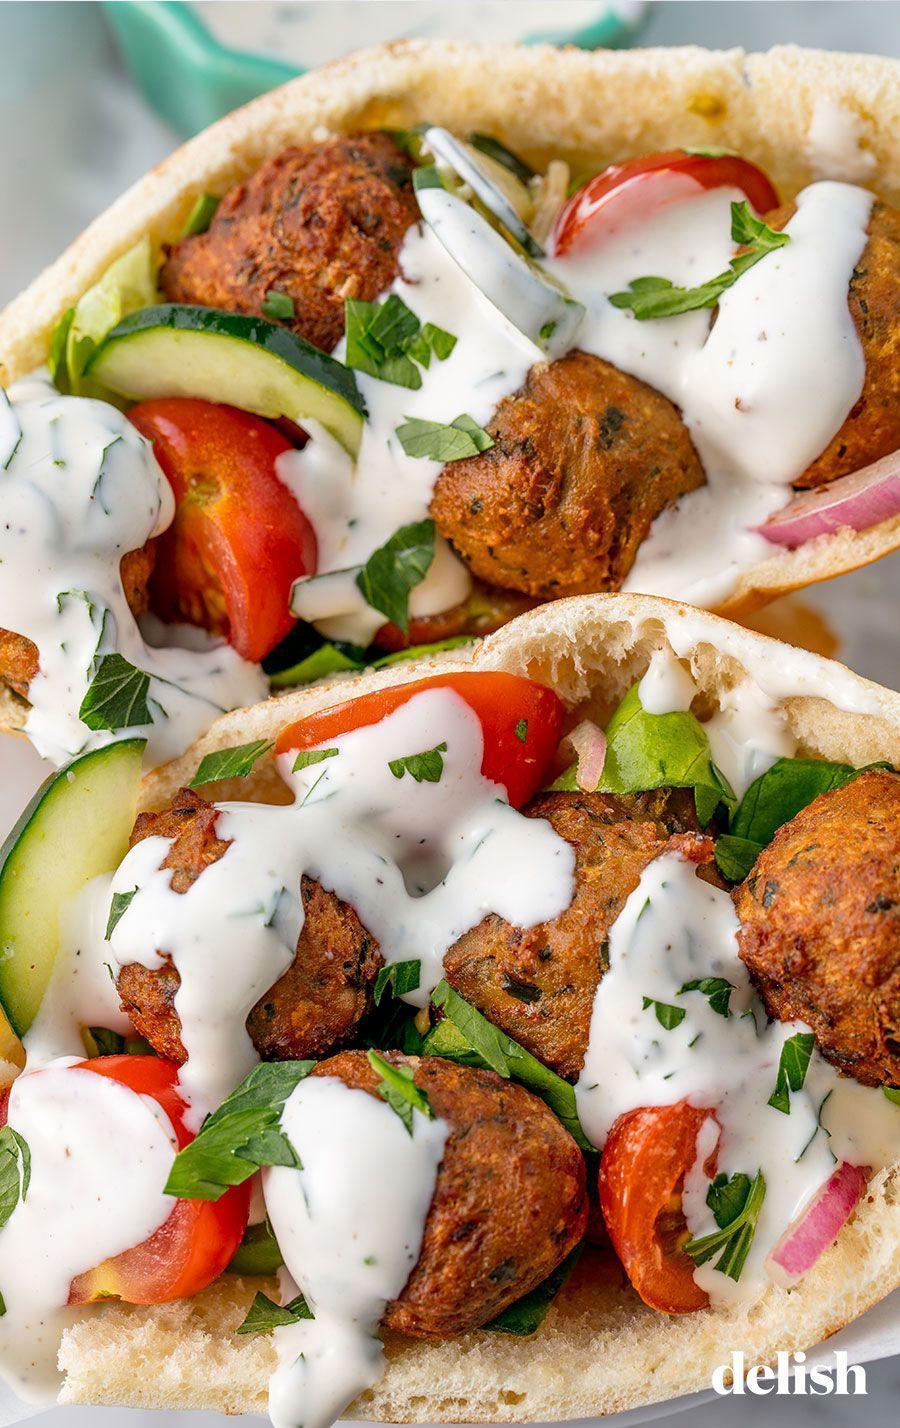 "<p>We swear they're easy to make! </p><p>Get the recipe from <a href=""https://www.delish.com/cooking/recipe-ideas/recipes/a54231/easy-homemade-falafel-recipe/"" rel=""nofollow noopener"" target=""_blank"" data-ylk=""slk:Delish."" class=""link rapid-noclick-resp"">Delish.</a></p>"